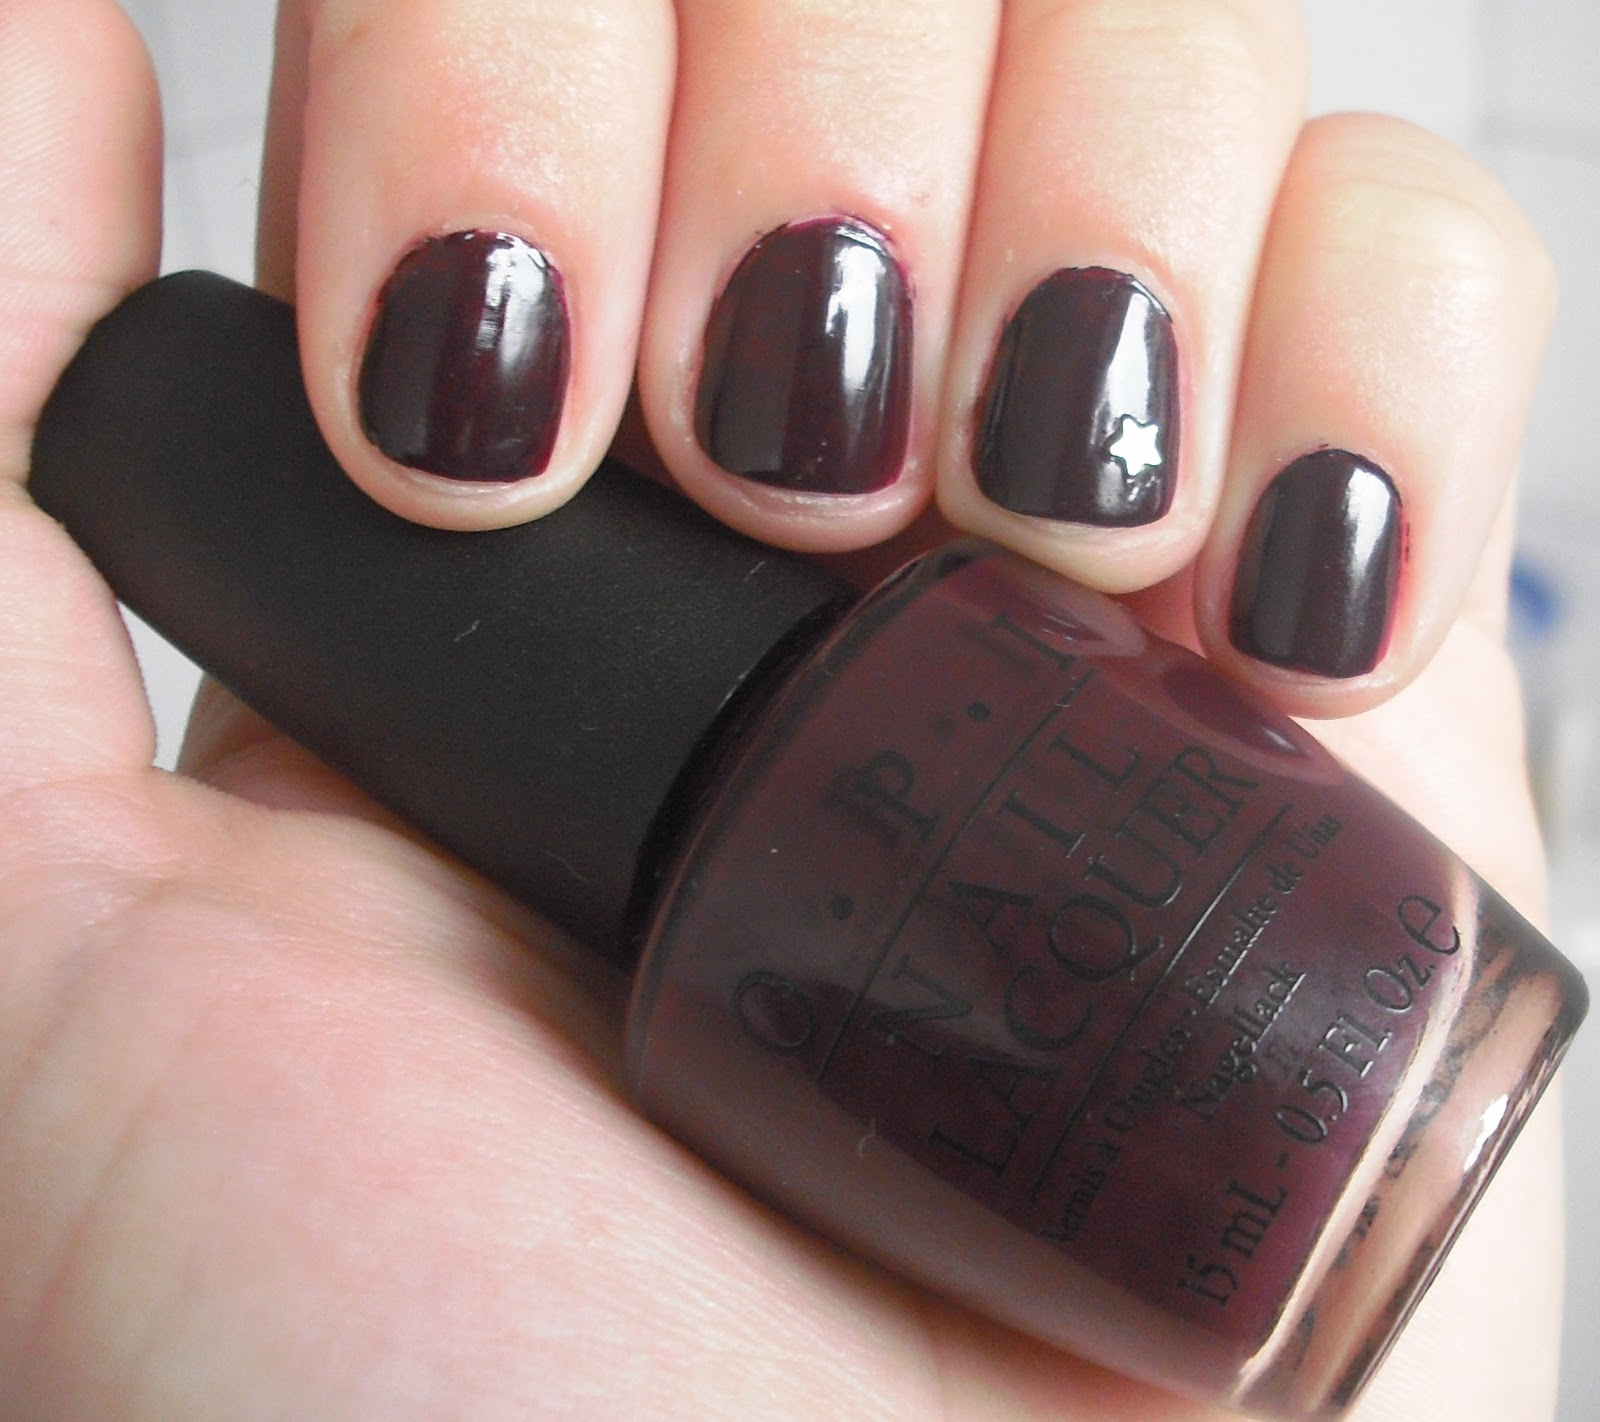 Nagellack Dunkelrot Hello Pretty Nagellack Des Tages William Tell Me About Opi